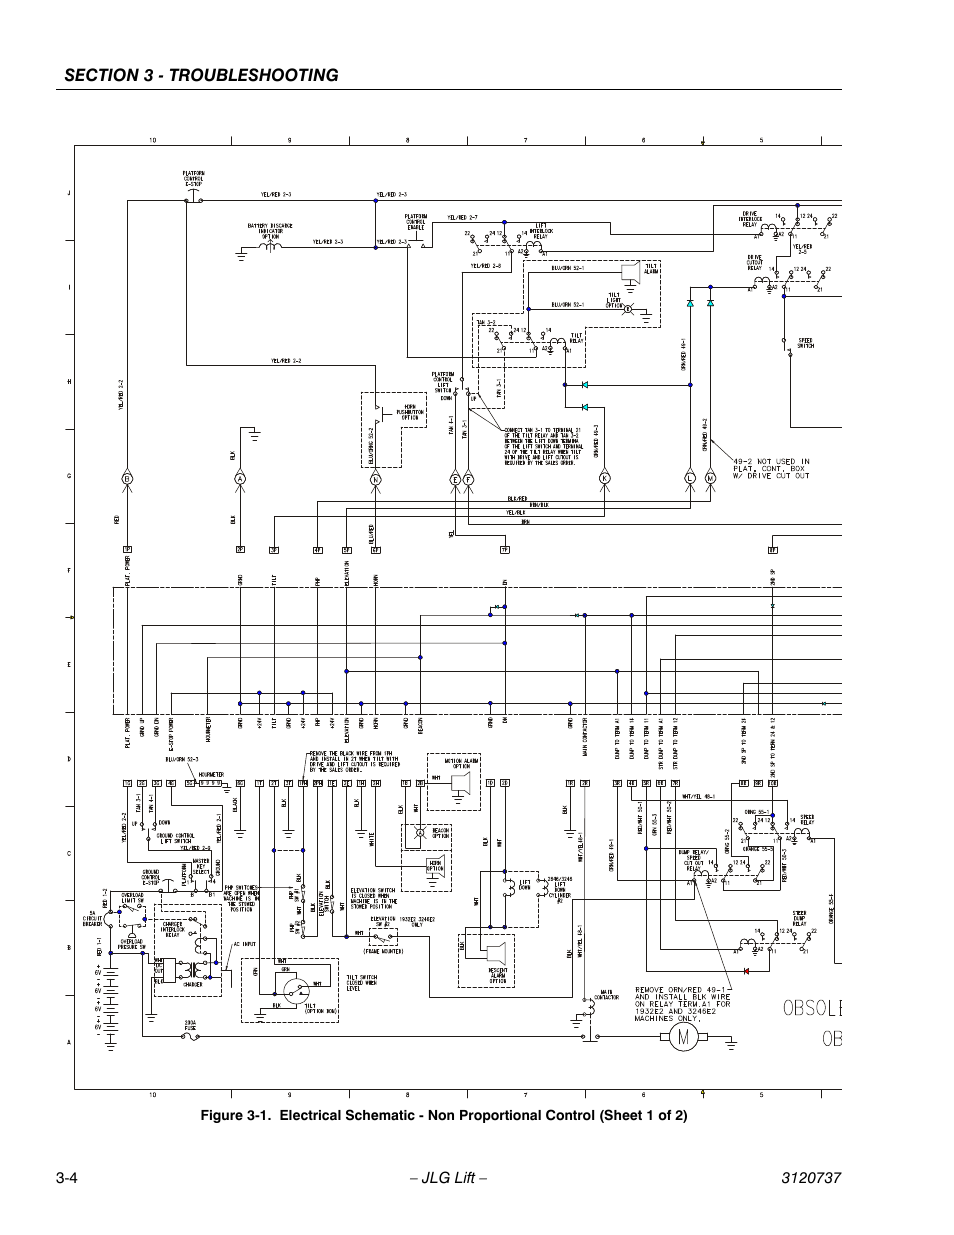 jlg 2632e2 wiring diagram circuit wiring and diagram hub u2022 rh bdnewsmix com